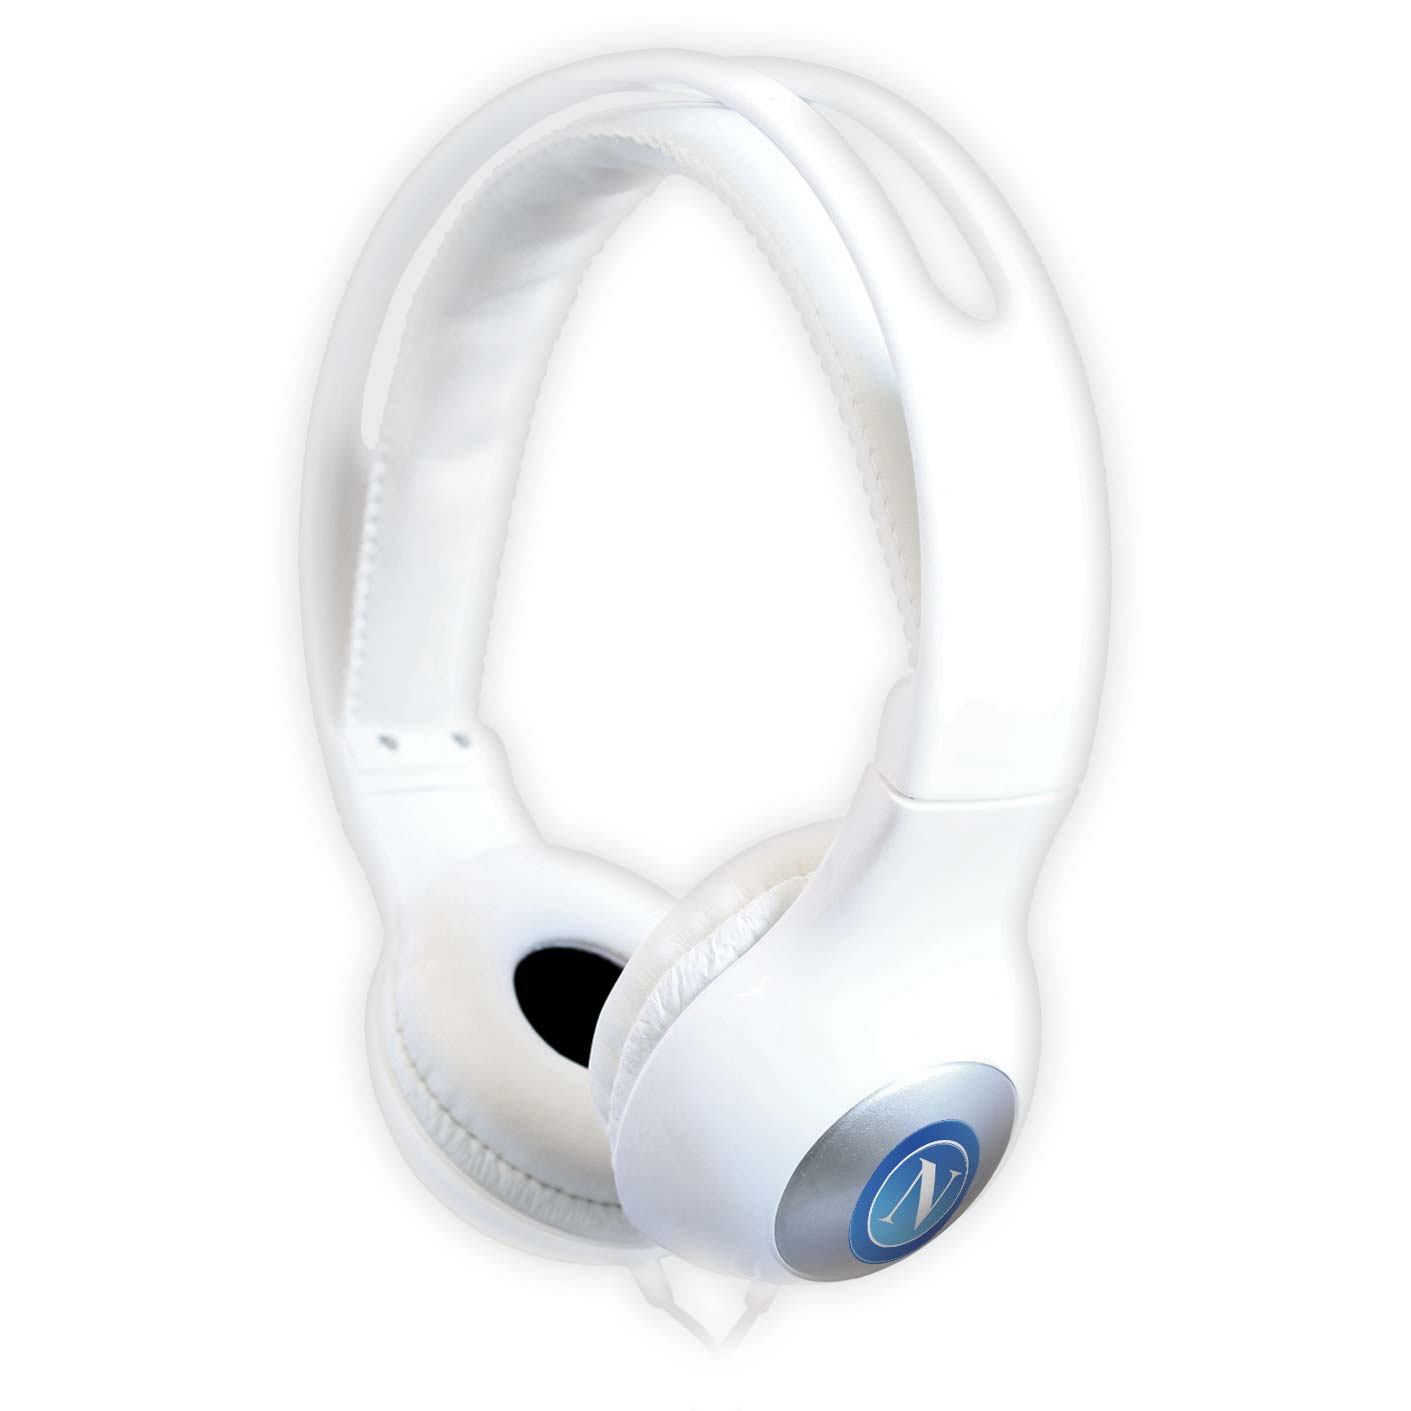 SSC Napoli Headphone with mic